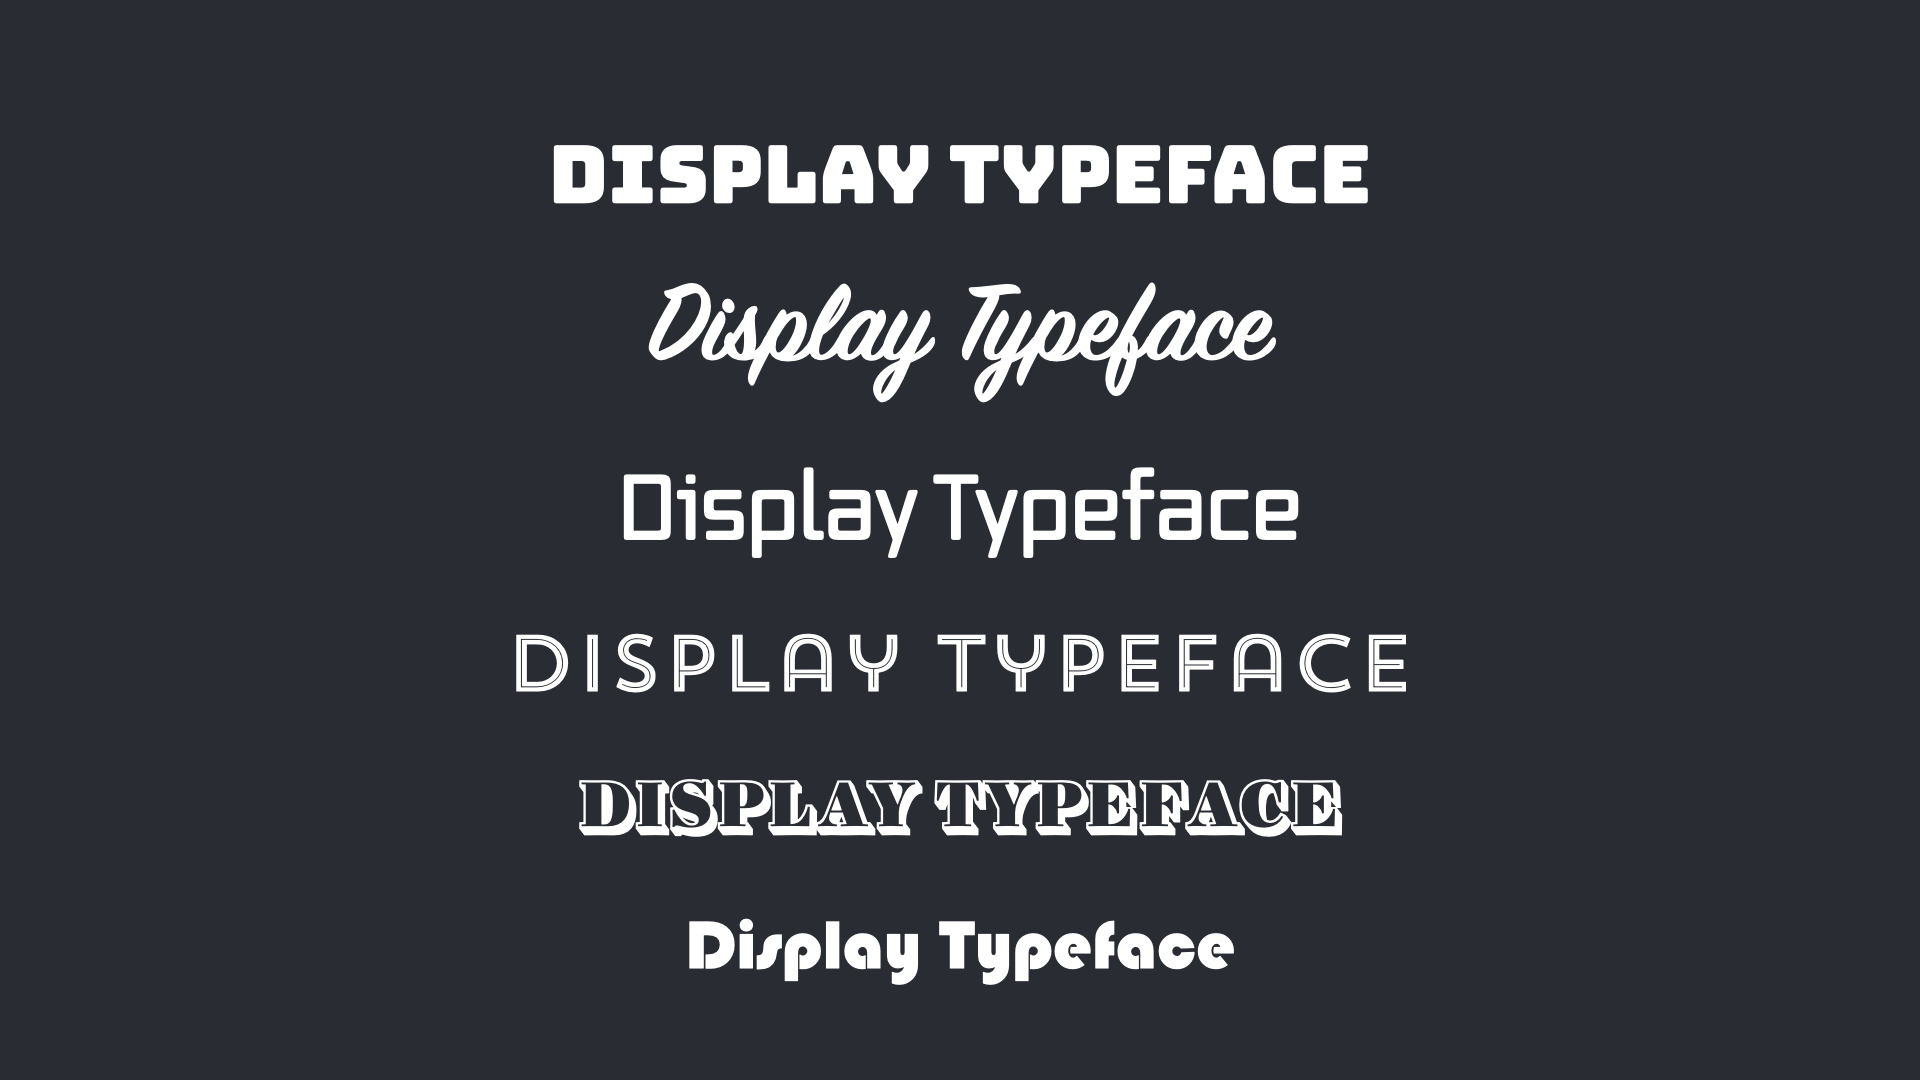 Different display typefaces from script to decorative